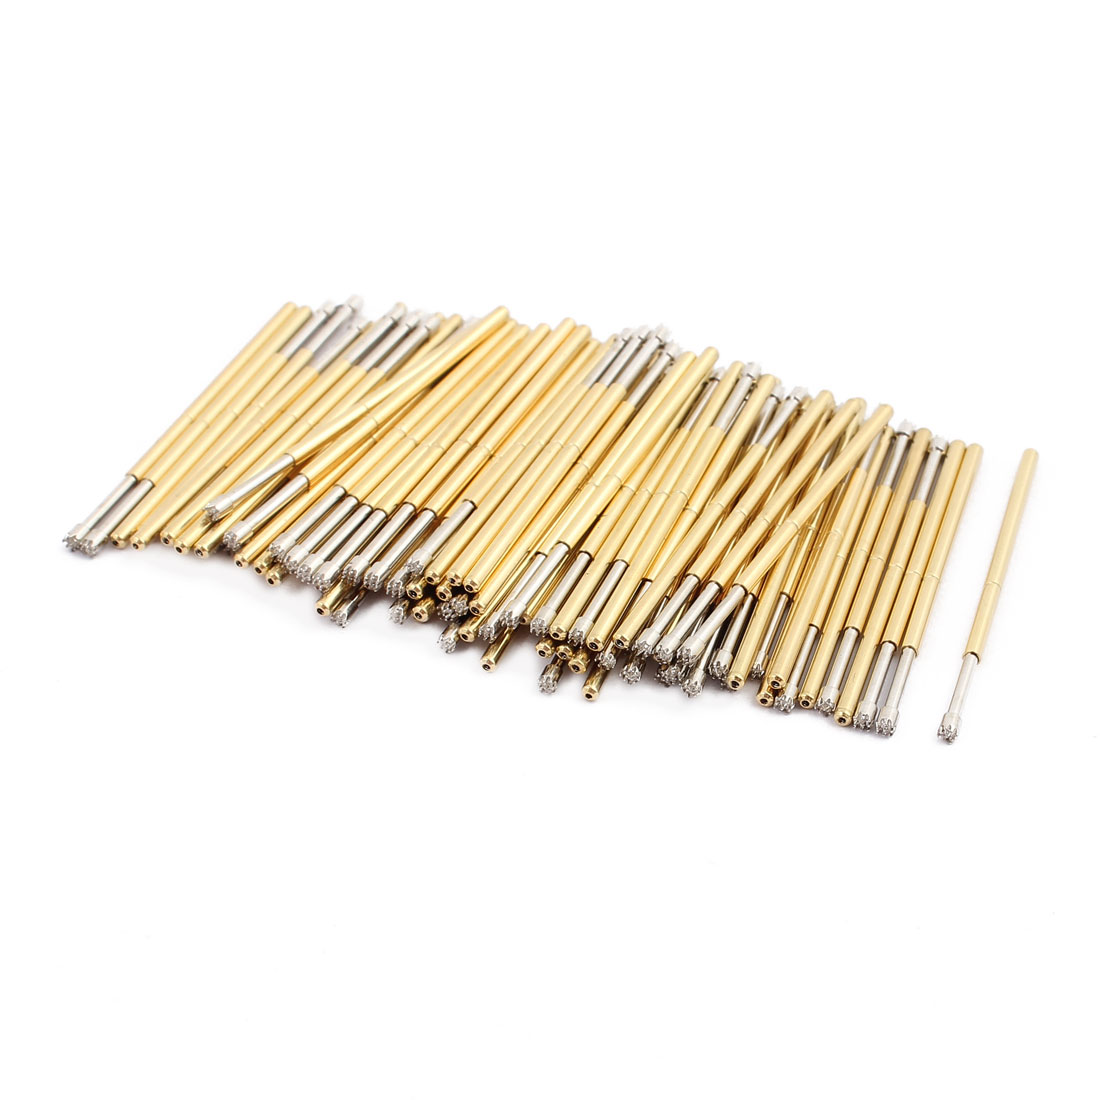 100pcs P100-H2 1.36mm Dia 33.3mm Length Metal Spring Pressure Test Probe Needle